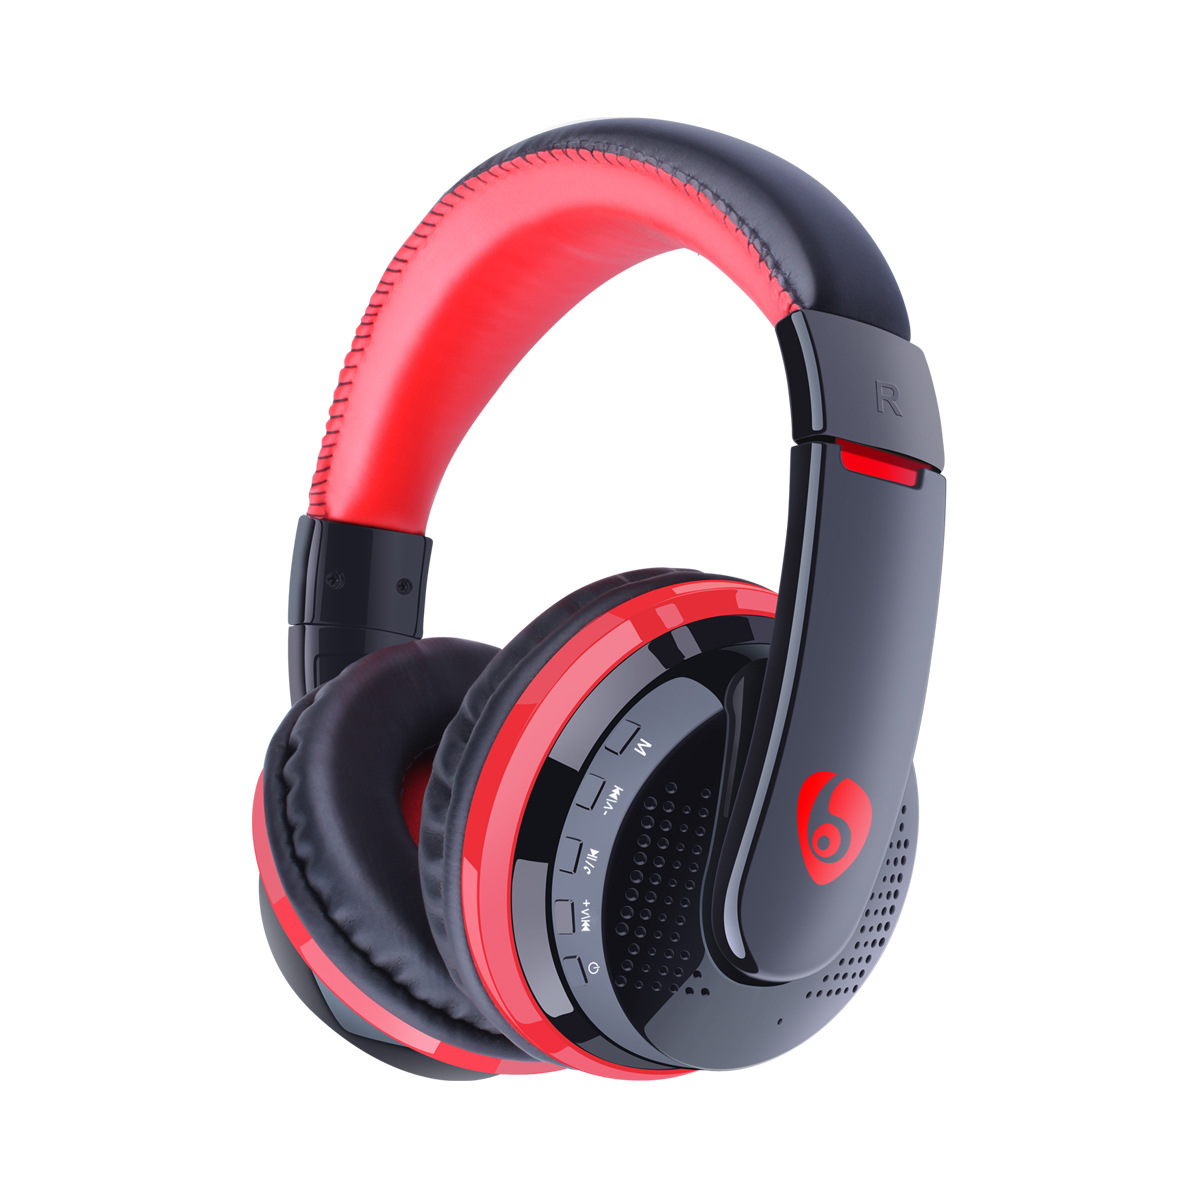 On-Ear Bluetooth Headphone With F, HIFI Card MP3 Player Bluetooth Headset Wireless Earphone With 3.5mm AUX Cable For Phone TV PC